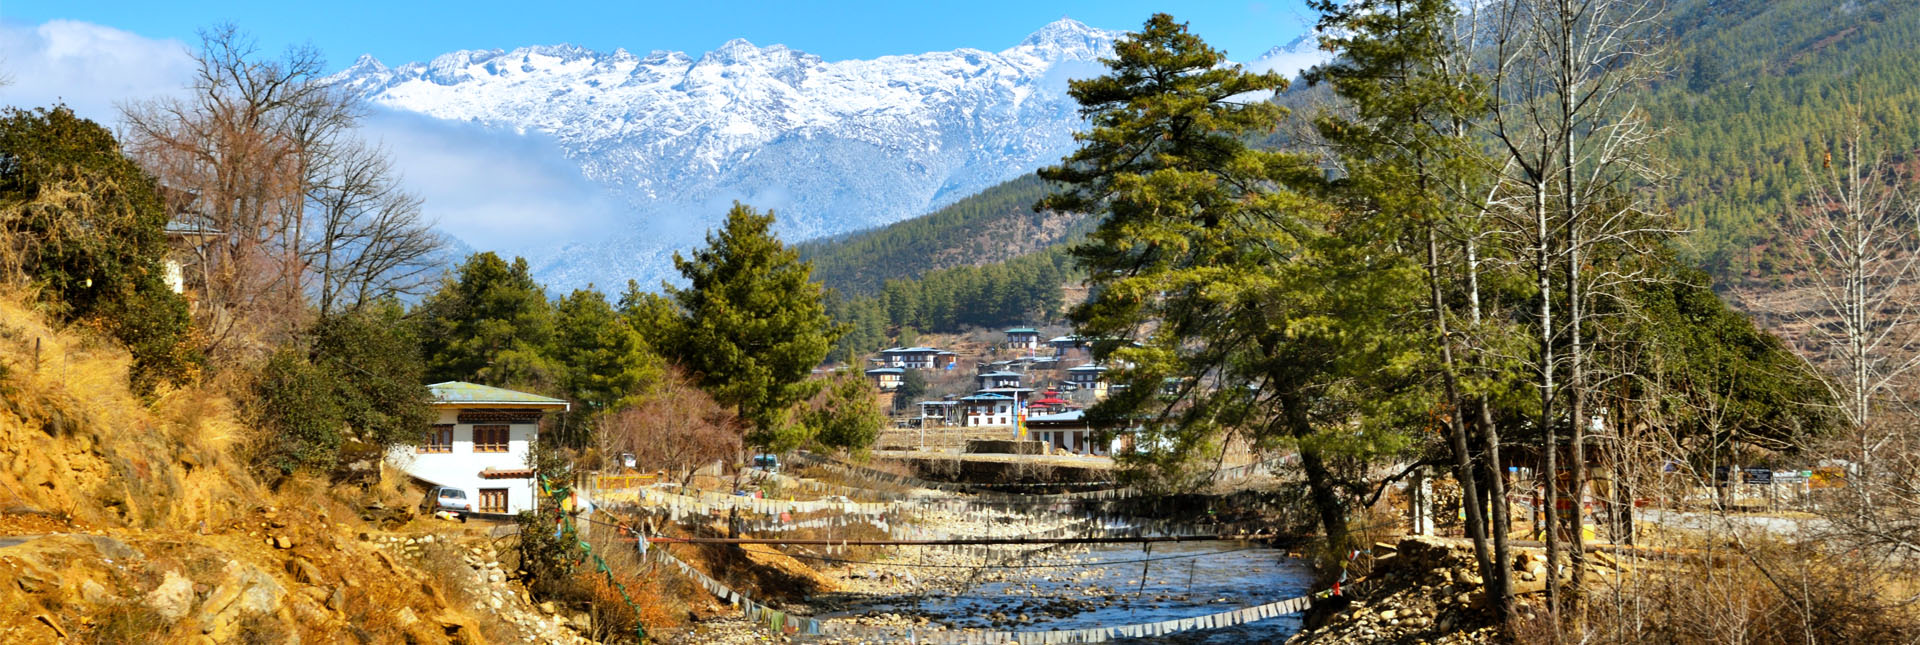 Paro town with the Bhutanese Himalaya in the backdrop